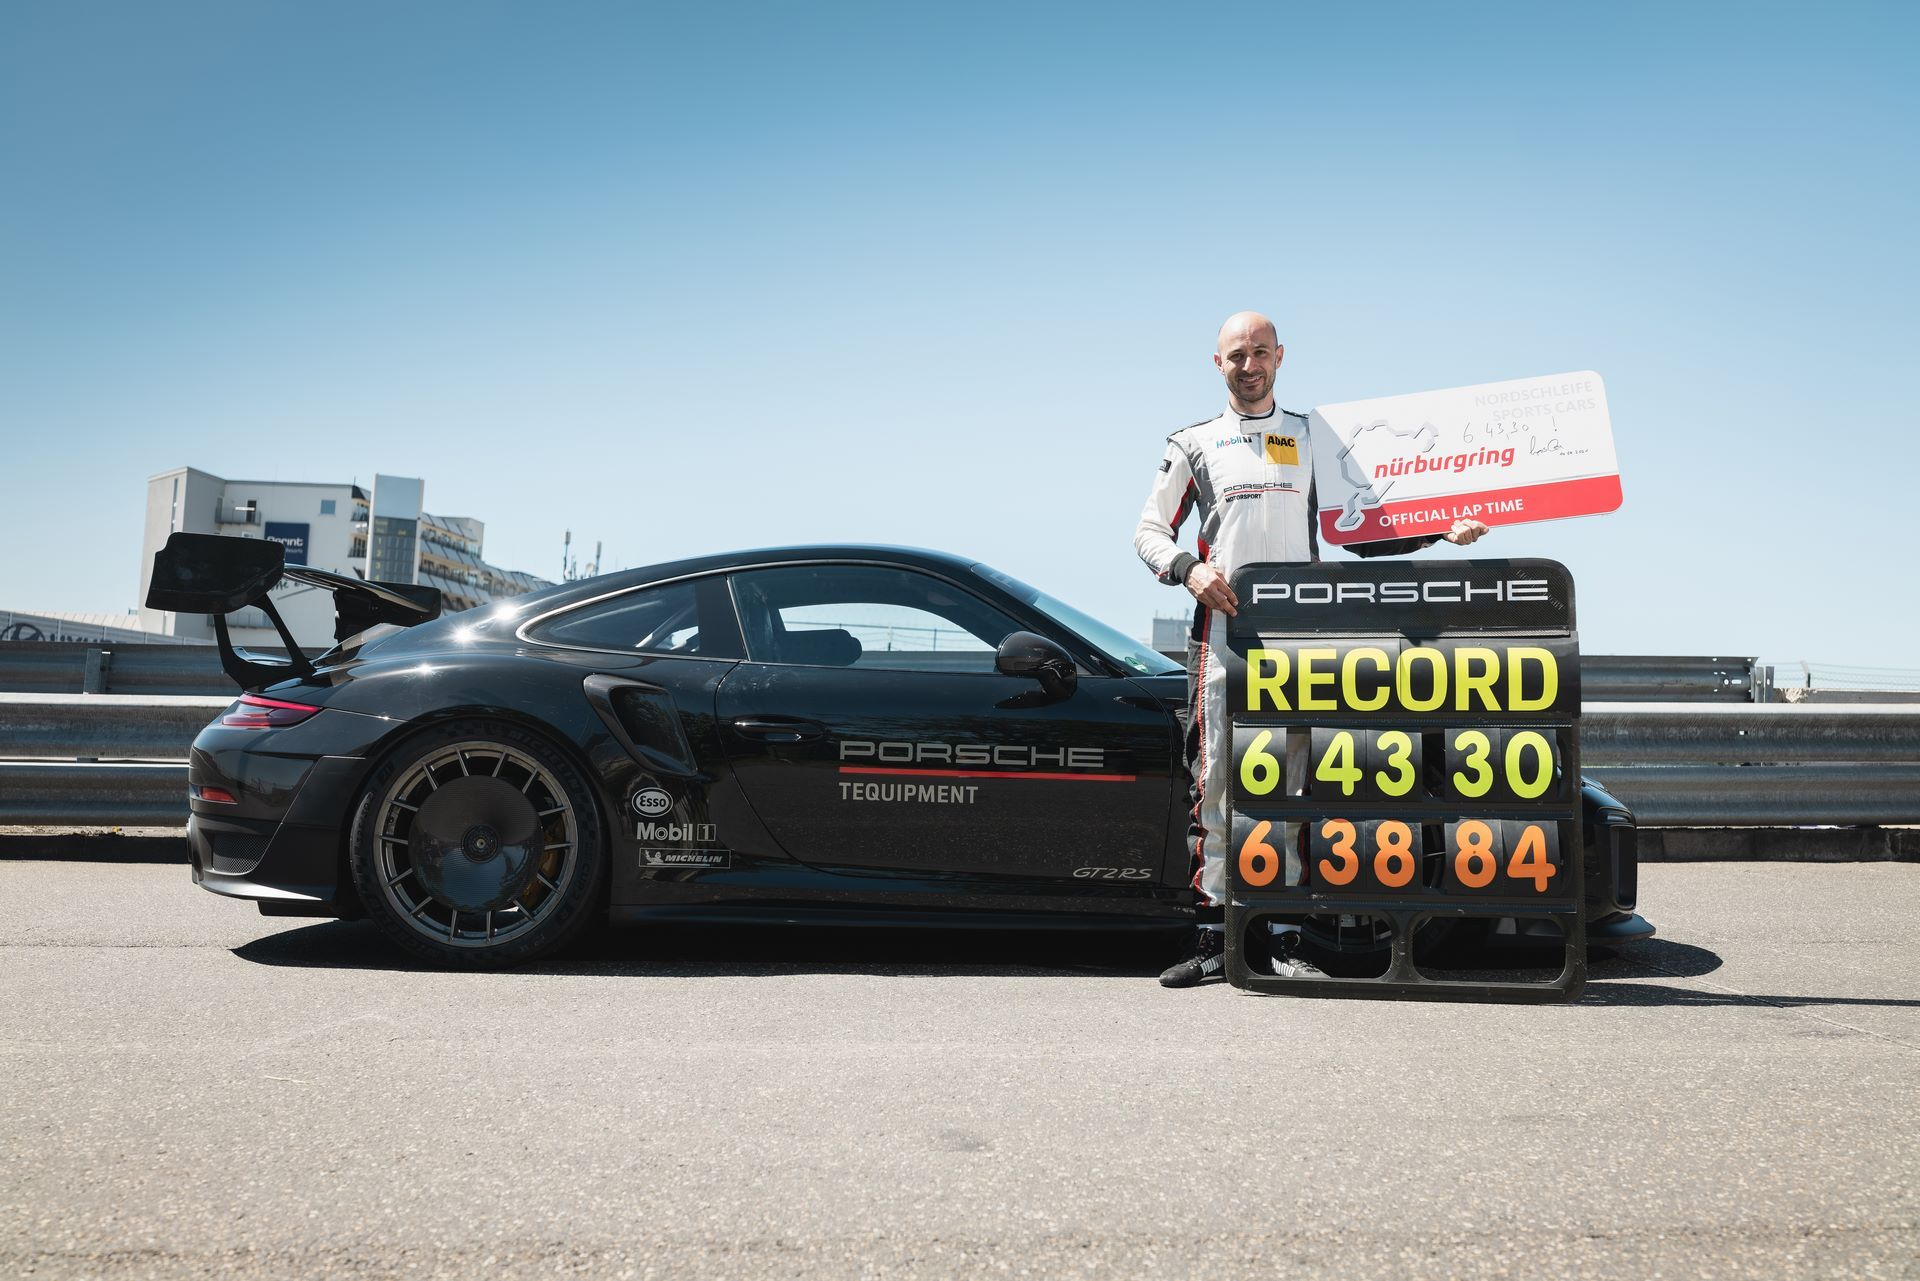 Porsche-911-GT2-RS-Manthey-Performance-Kit-Nurburgring-Record-10